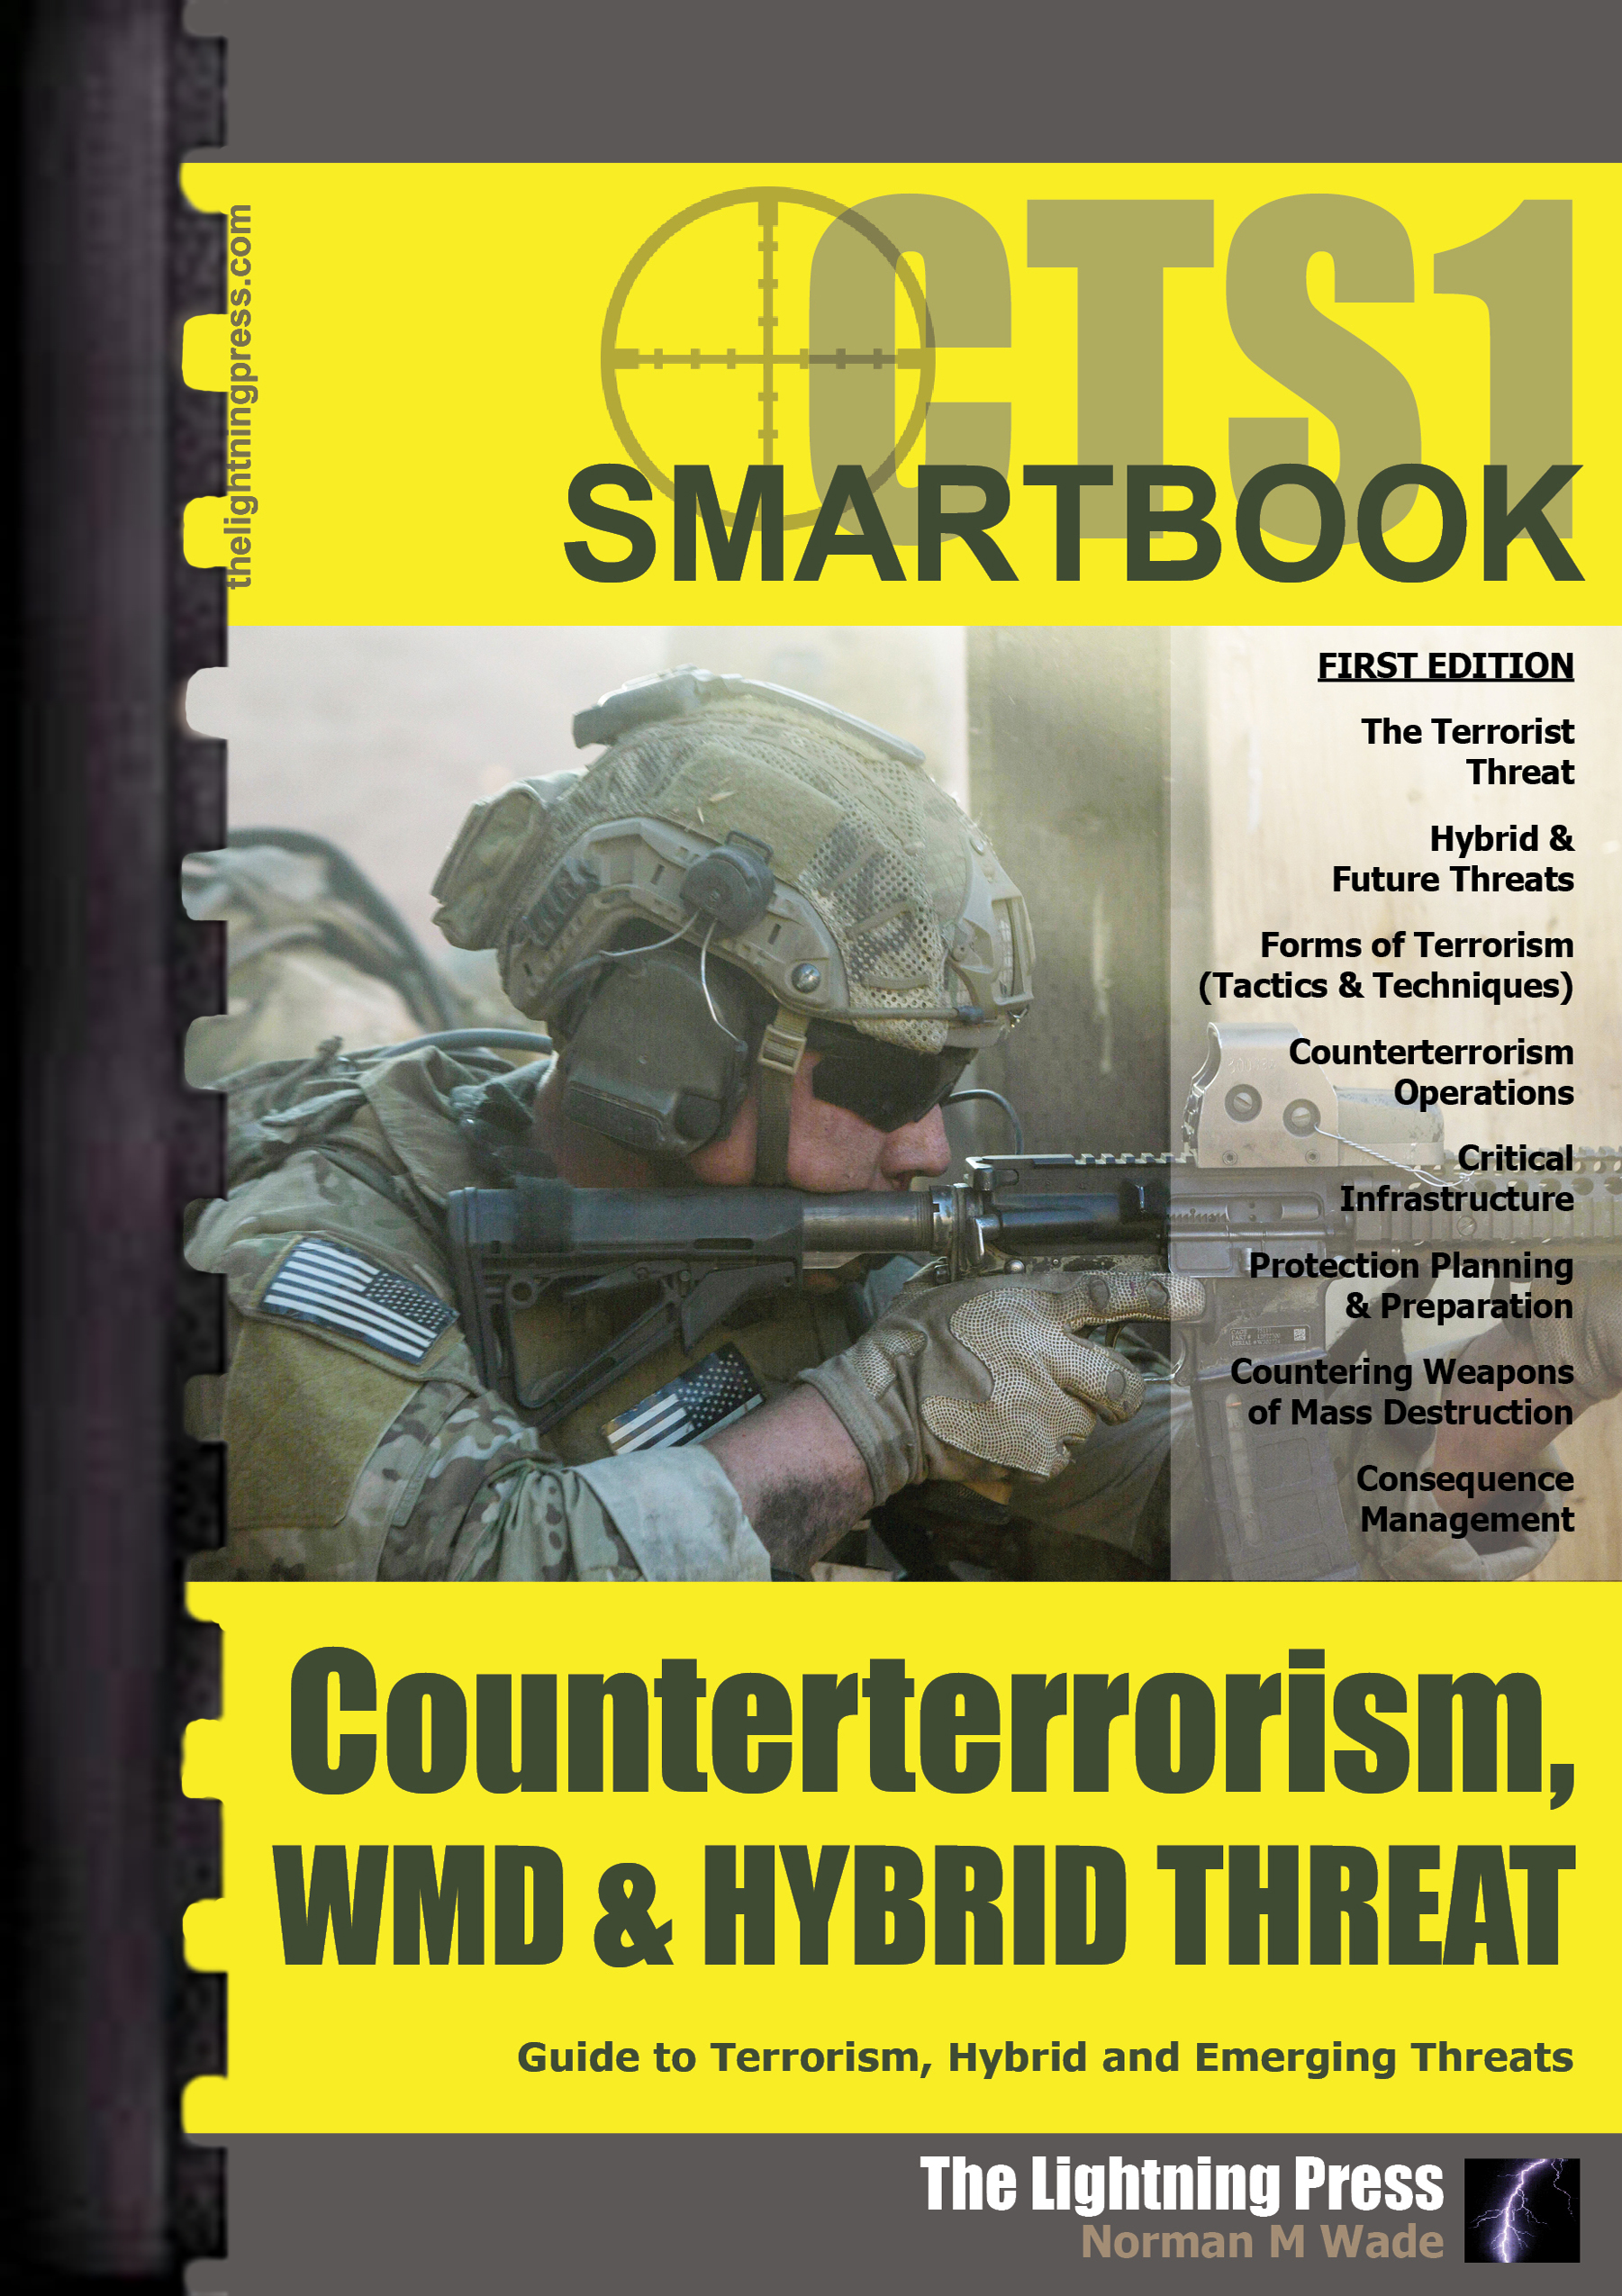 CTS1: The Counterterrorism, WMD & Hybrid Threat SMARTbook (Plastic-Comb)